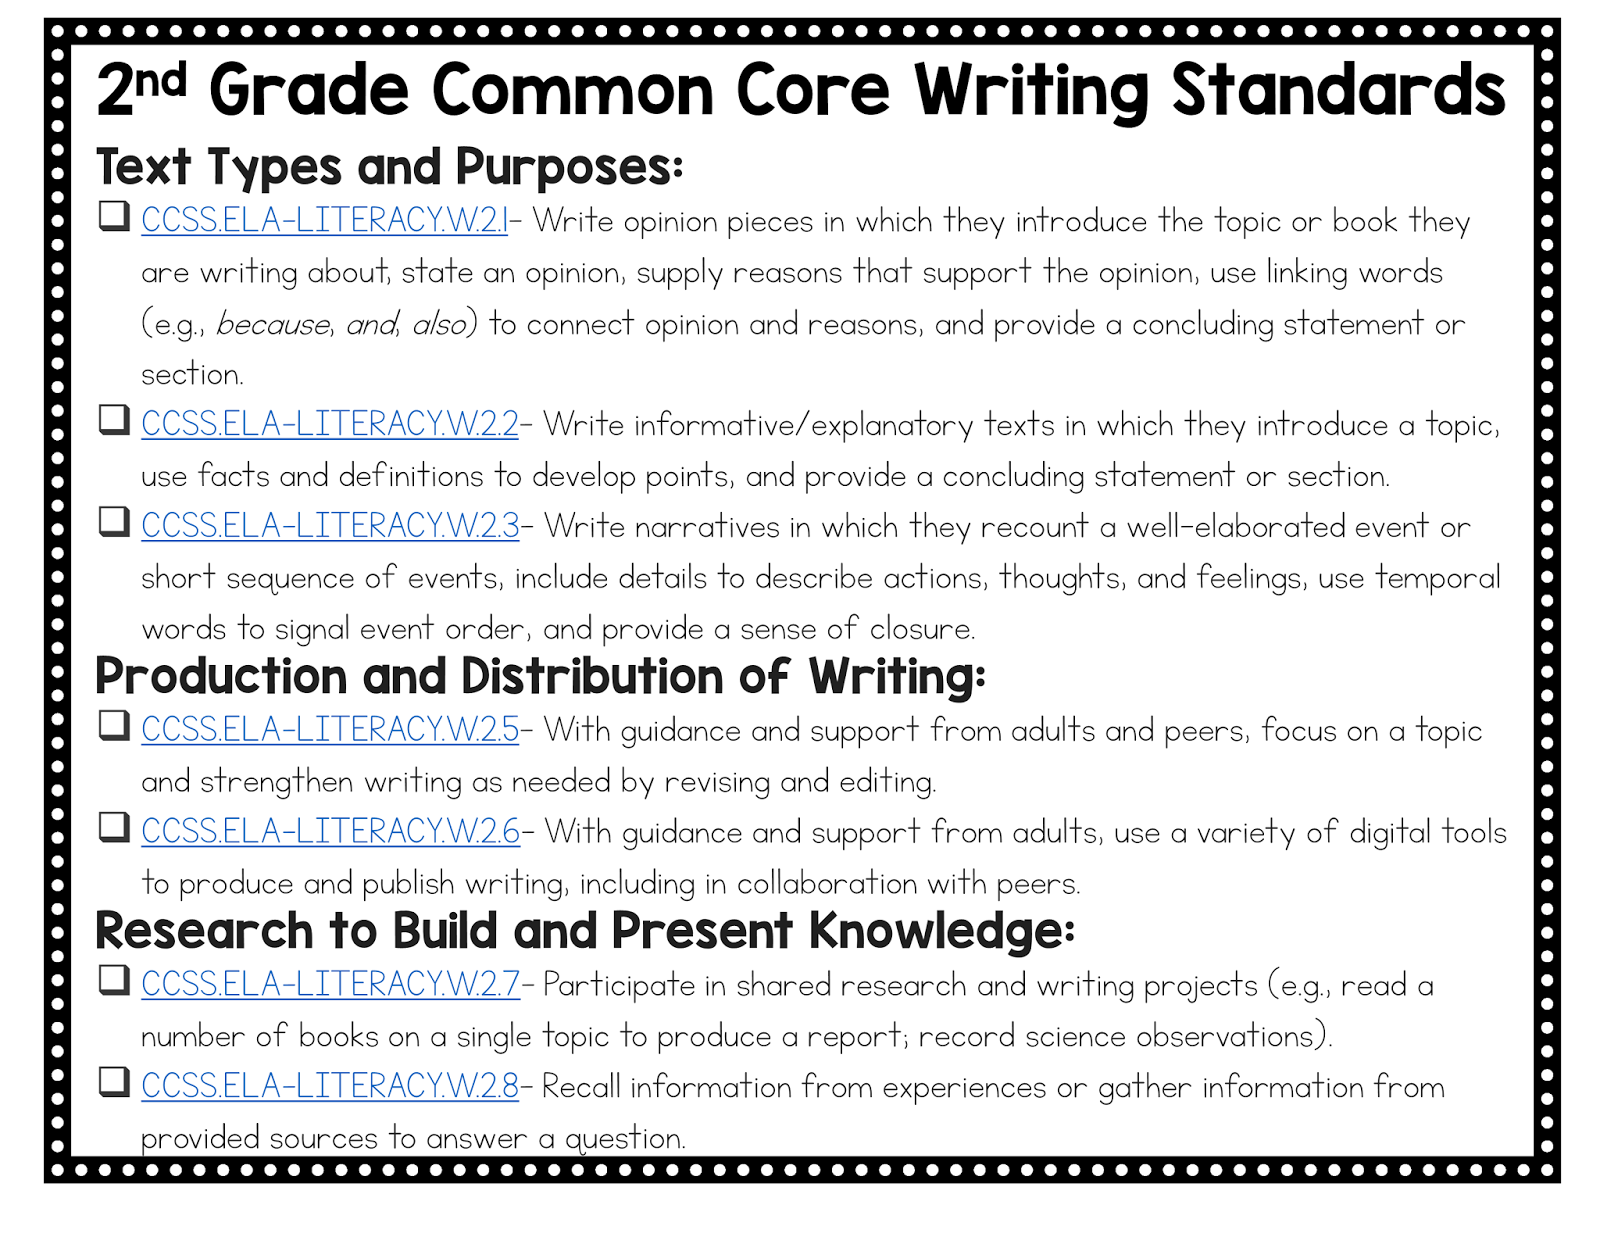 2nd grade narrative writing 2nd grade narrative writing checklistpdf 2nd grade rubric for narrative writingpdf common core state standards narrativepdf 2nd 3rd narrative writing checklistpdf.